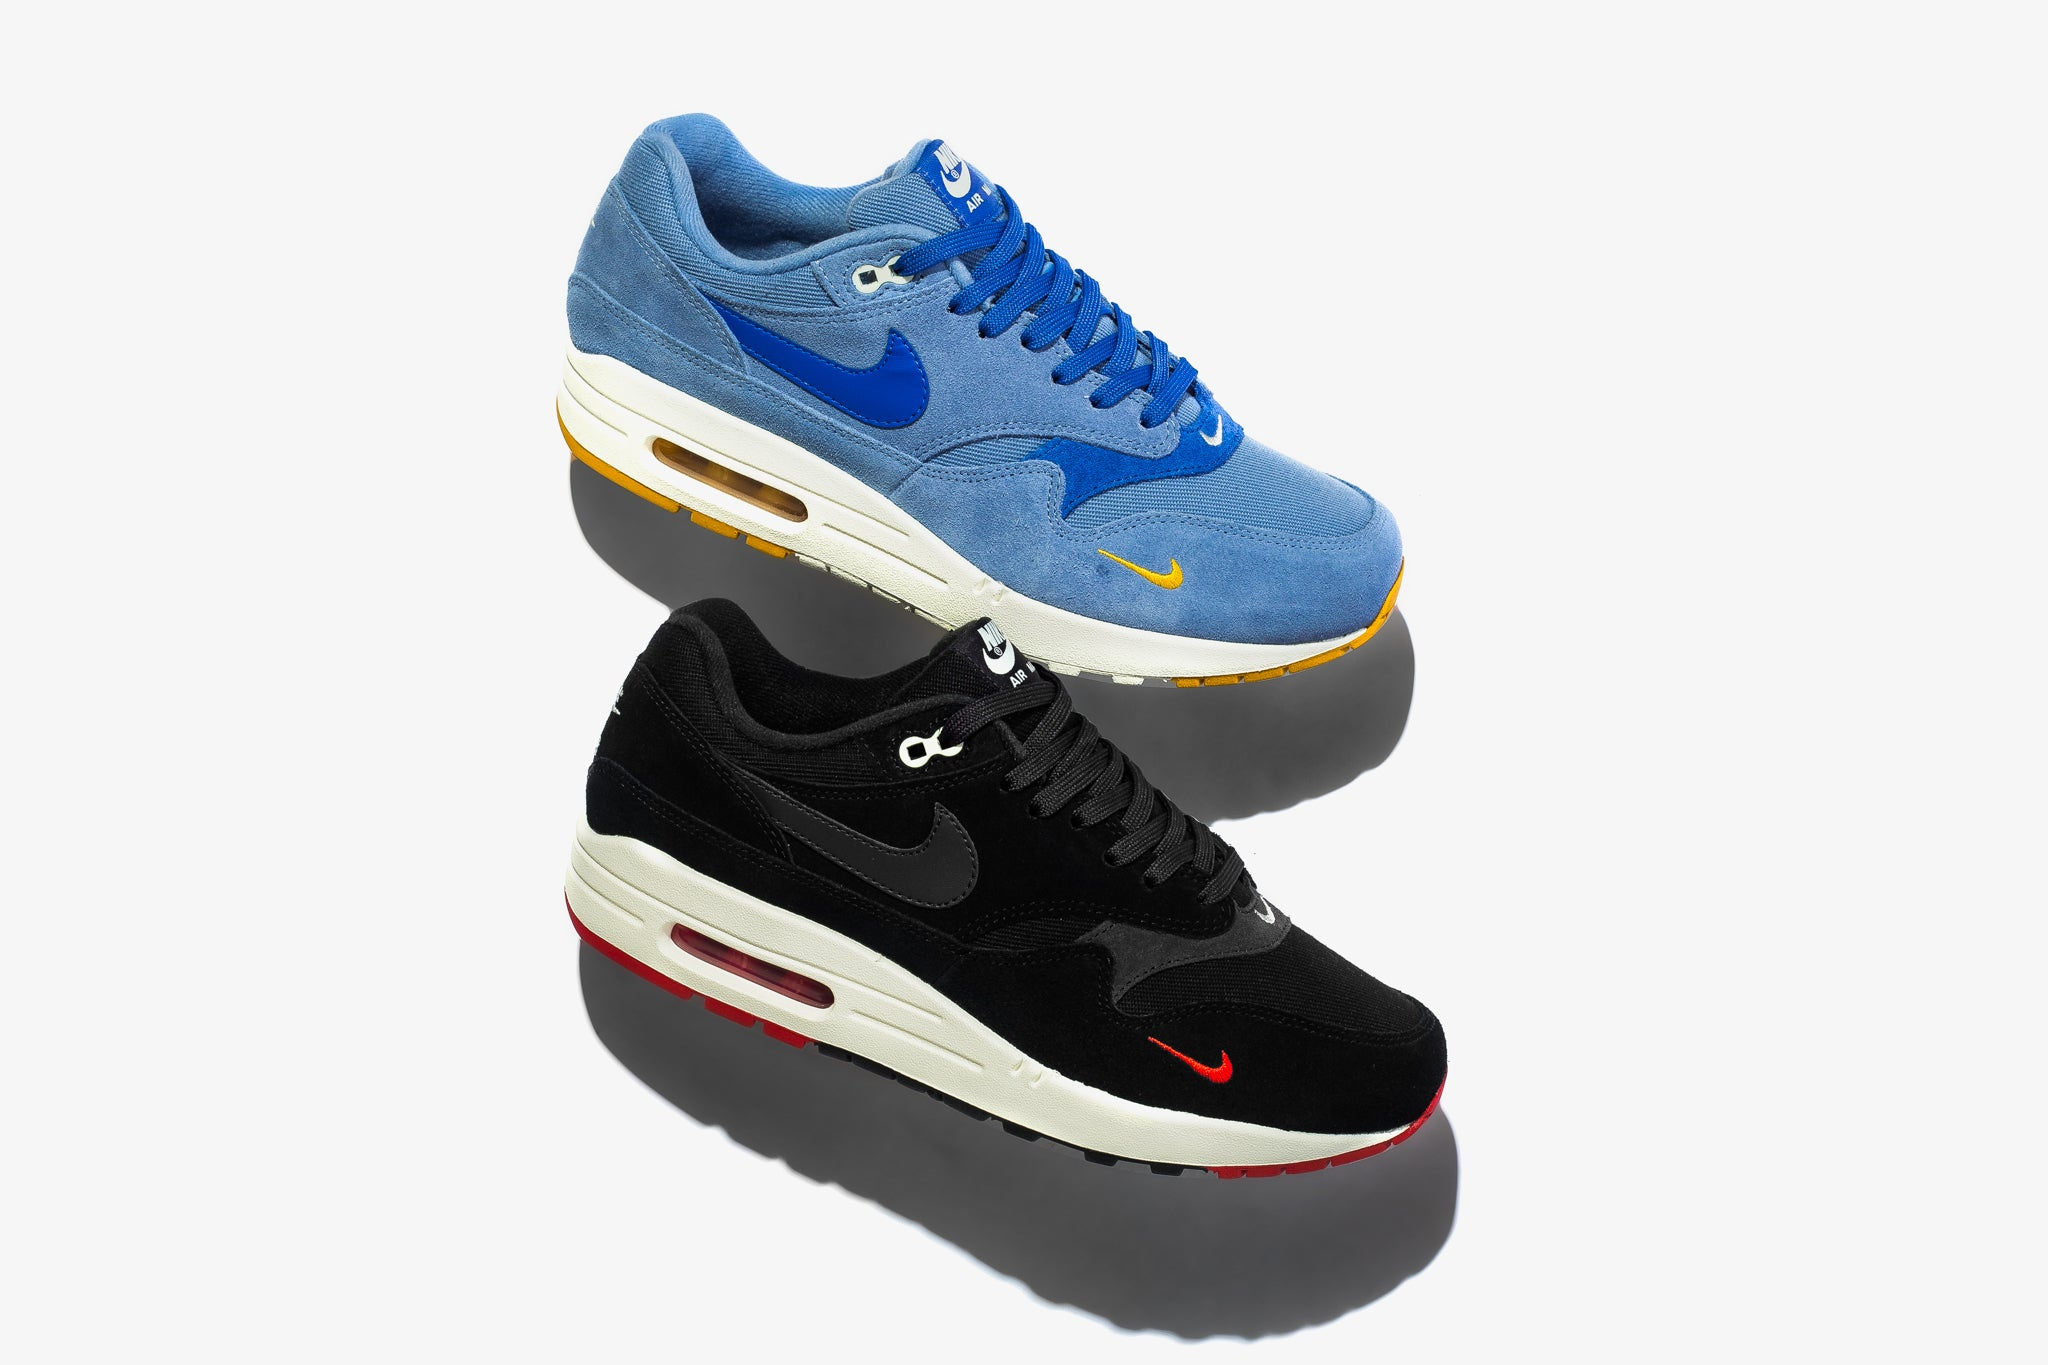 9ffb9e073e The Air Max 1 Premium combines leather and textiles to form the upper with  the classic mini swoosh ...